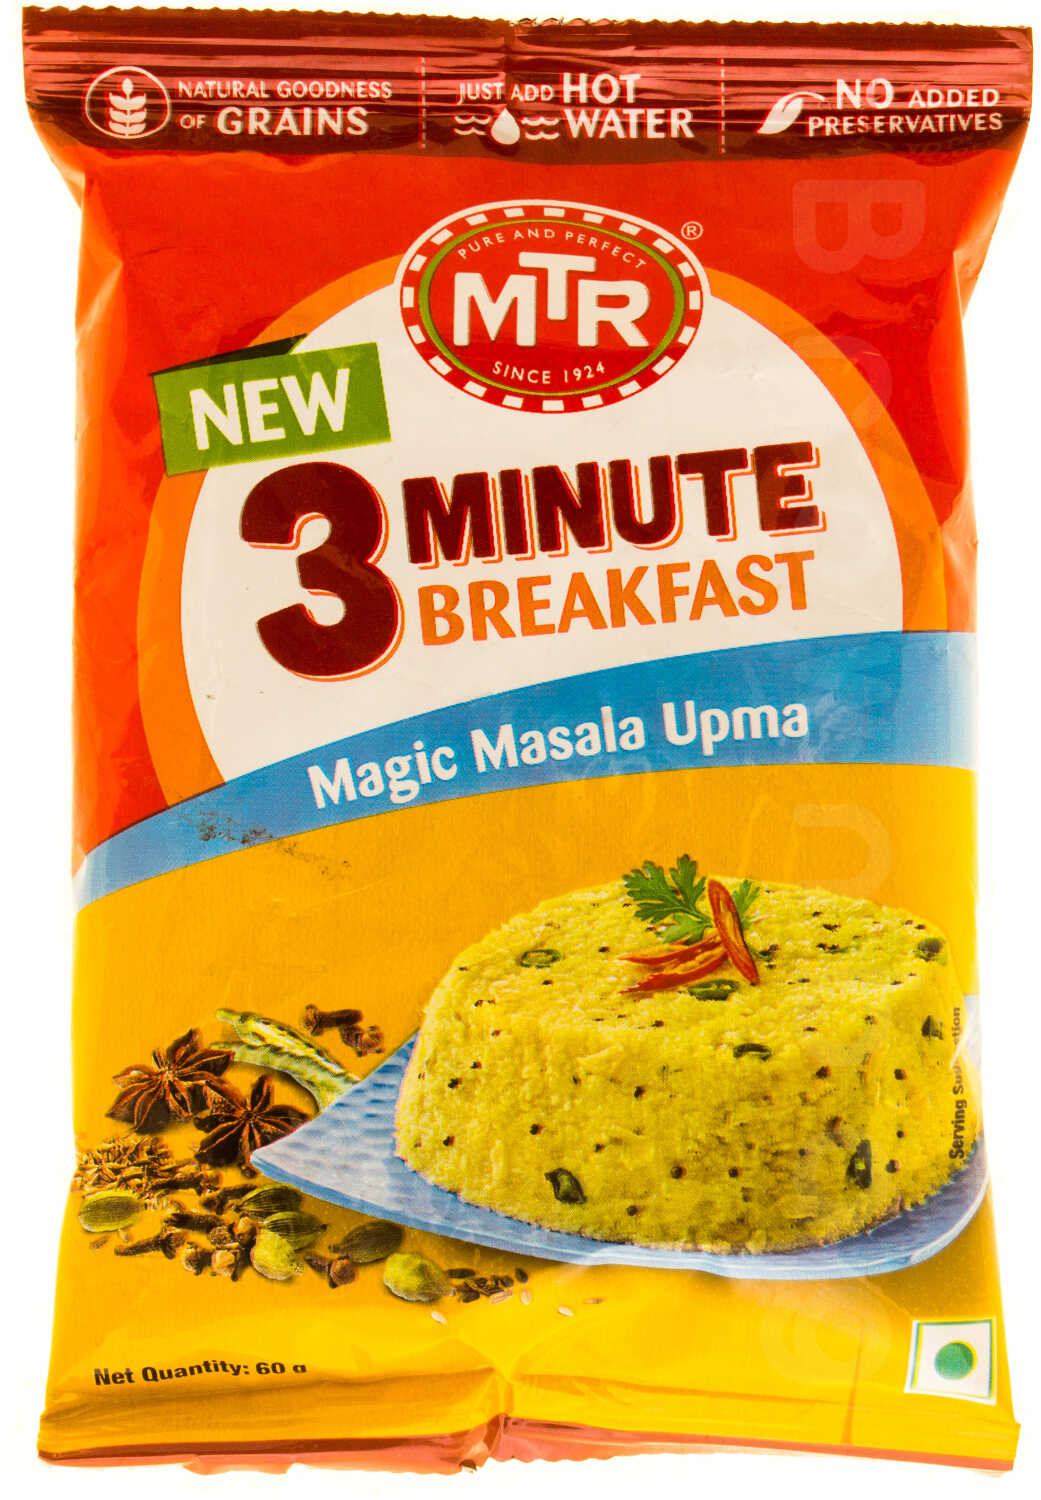 MTR New 3 Minute Breakfast Magic Masala Upma